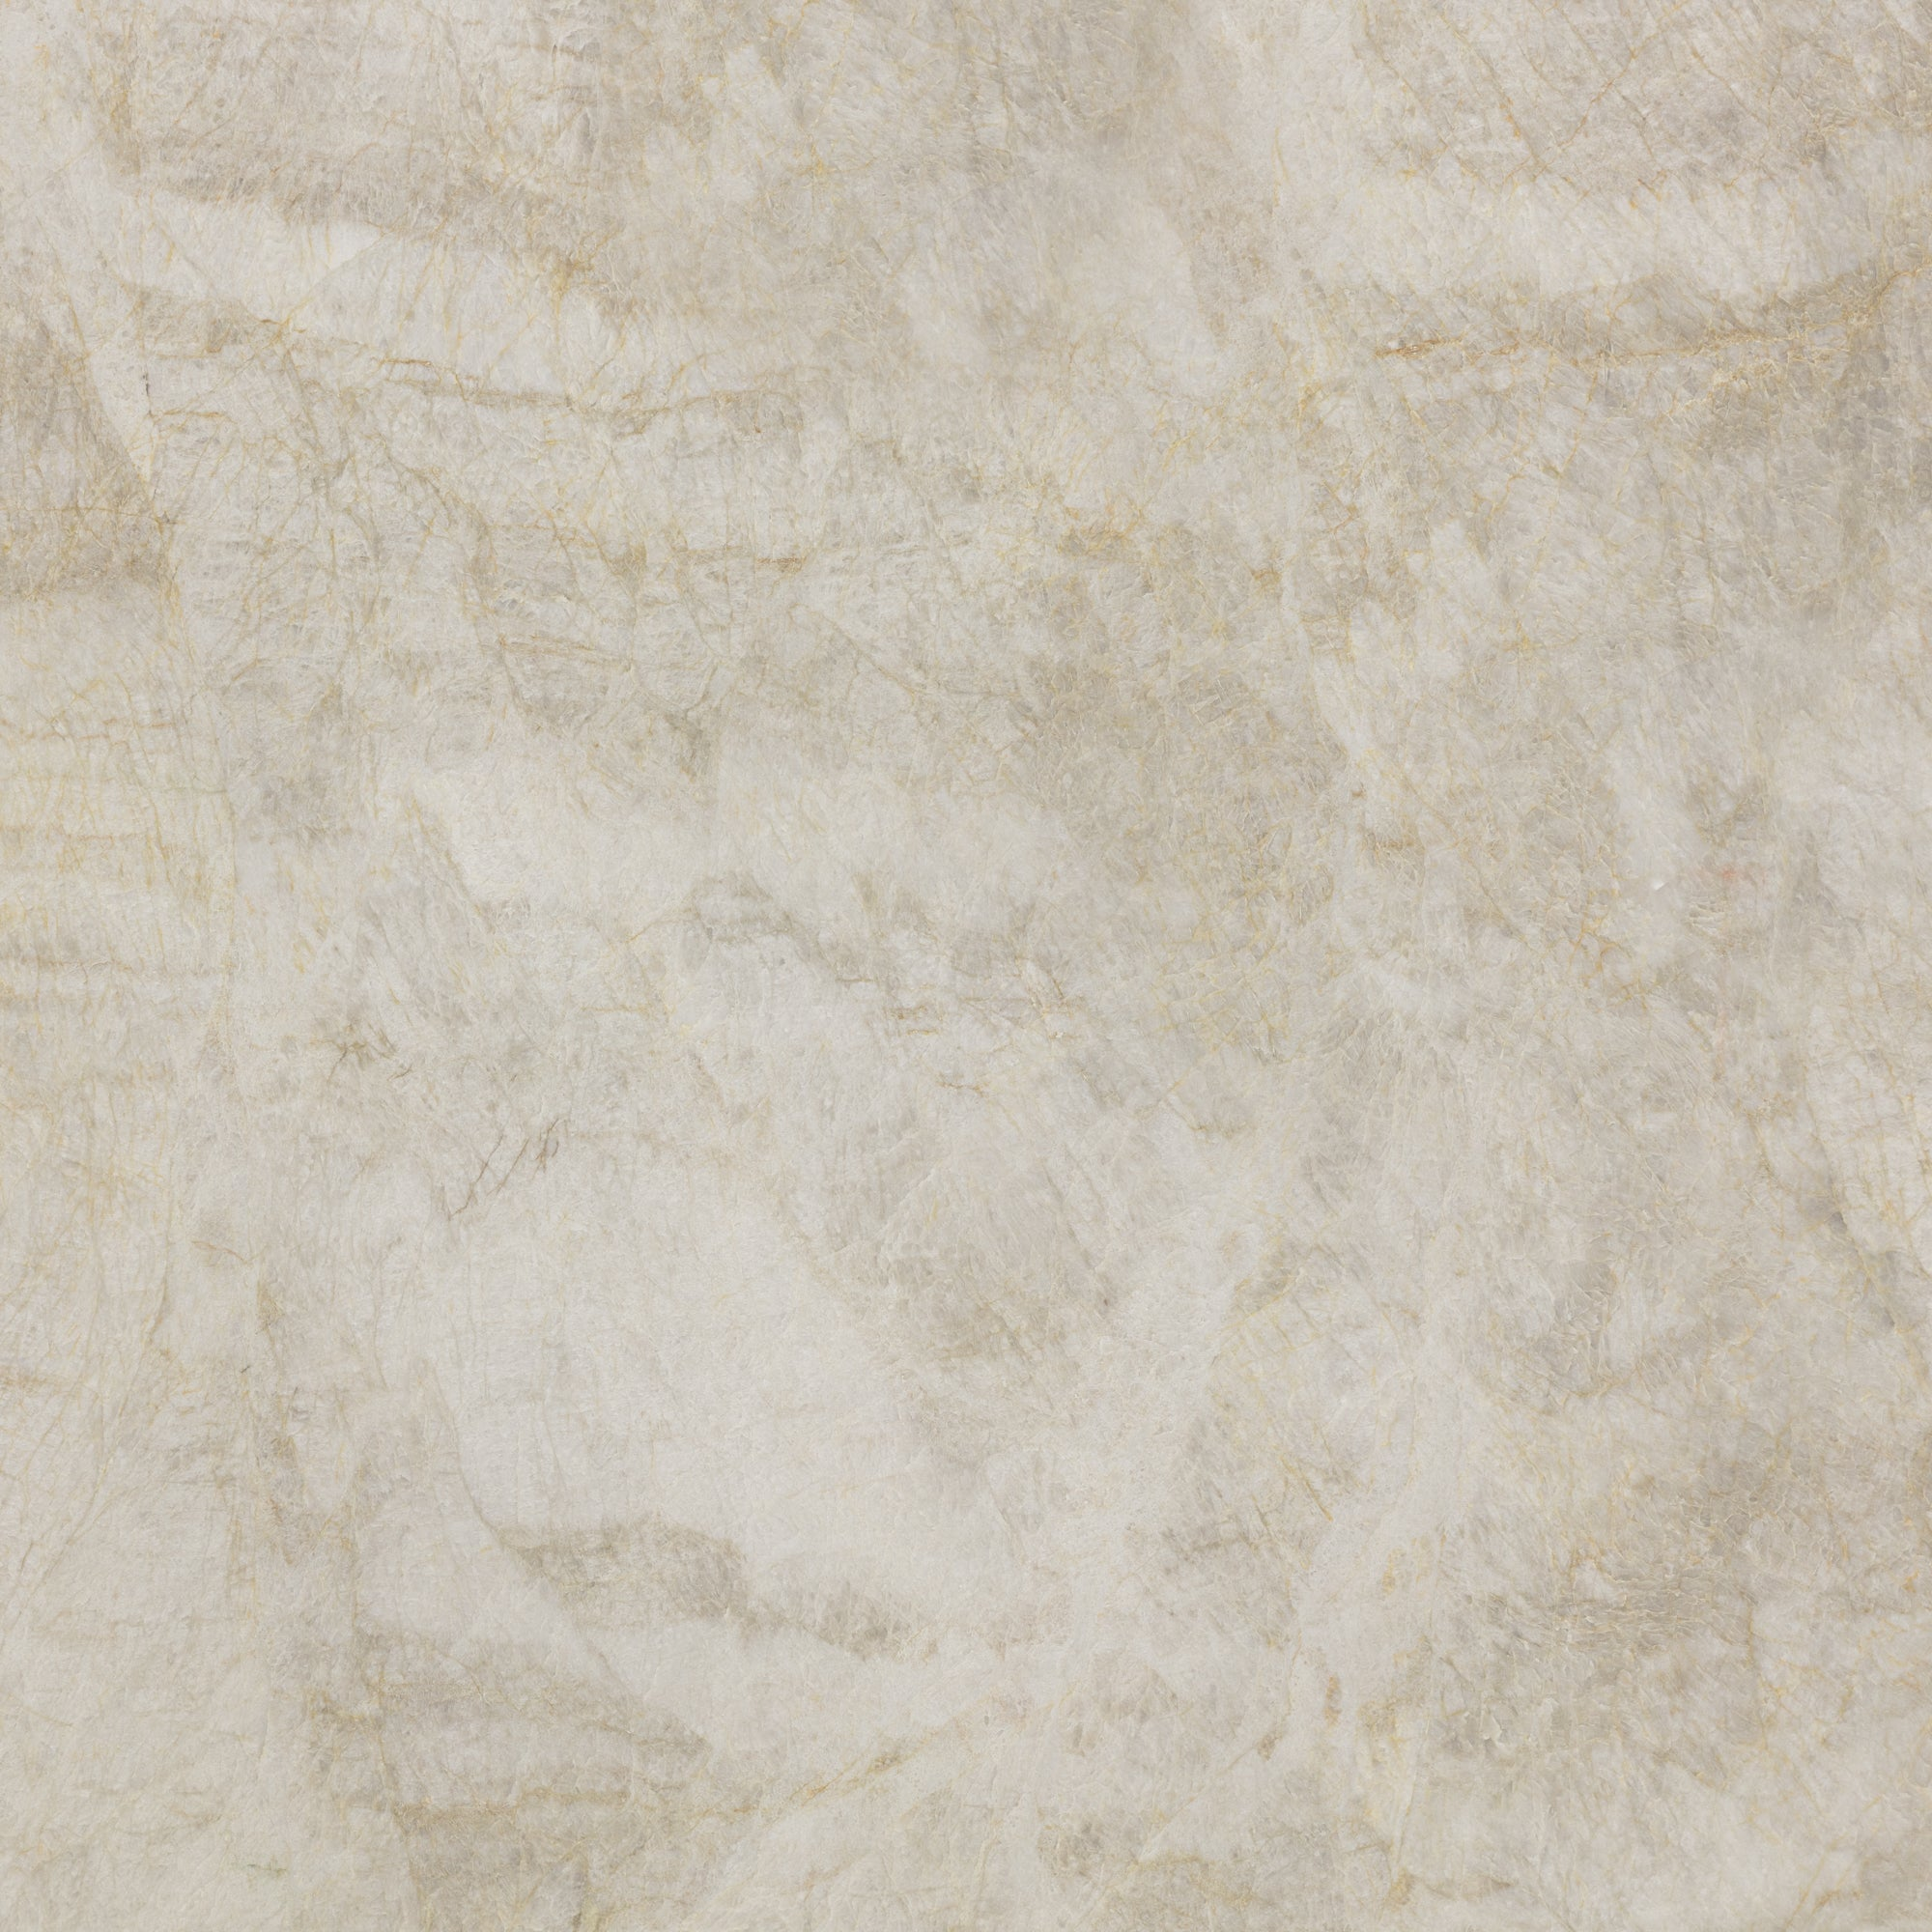 3cm Naica Quartzite Swatch Card  Leather Samples Slab product photo